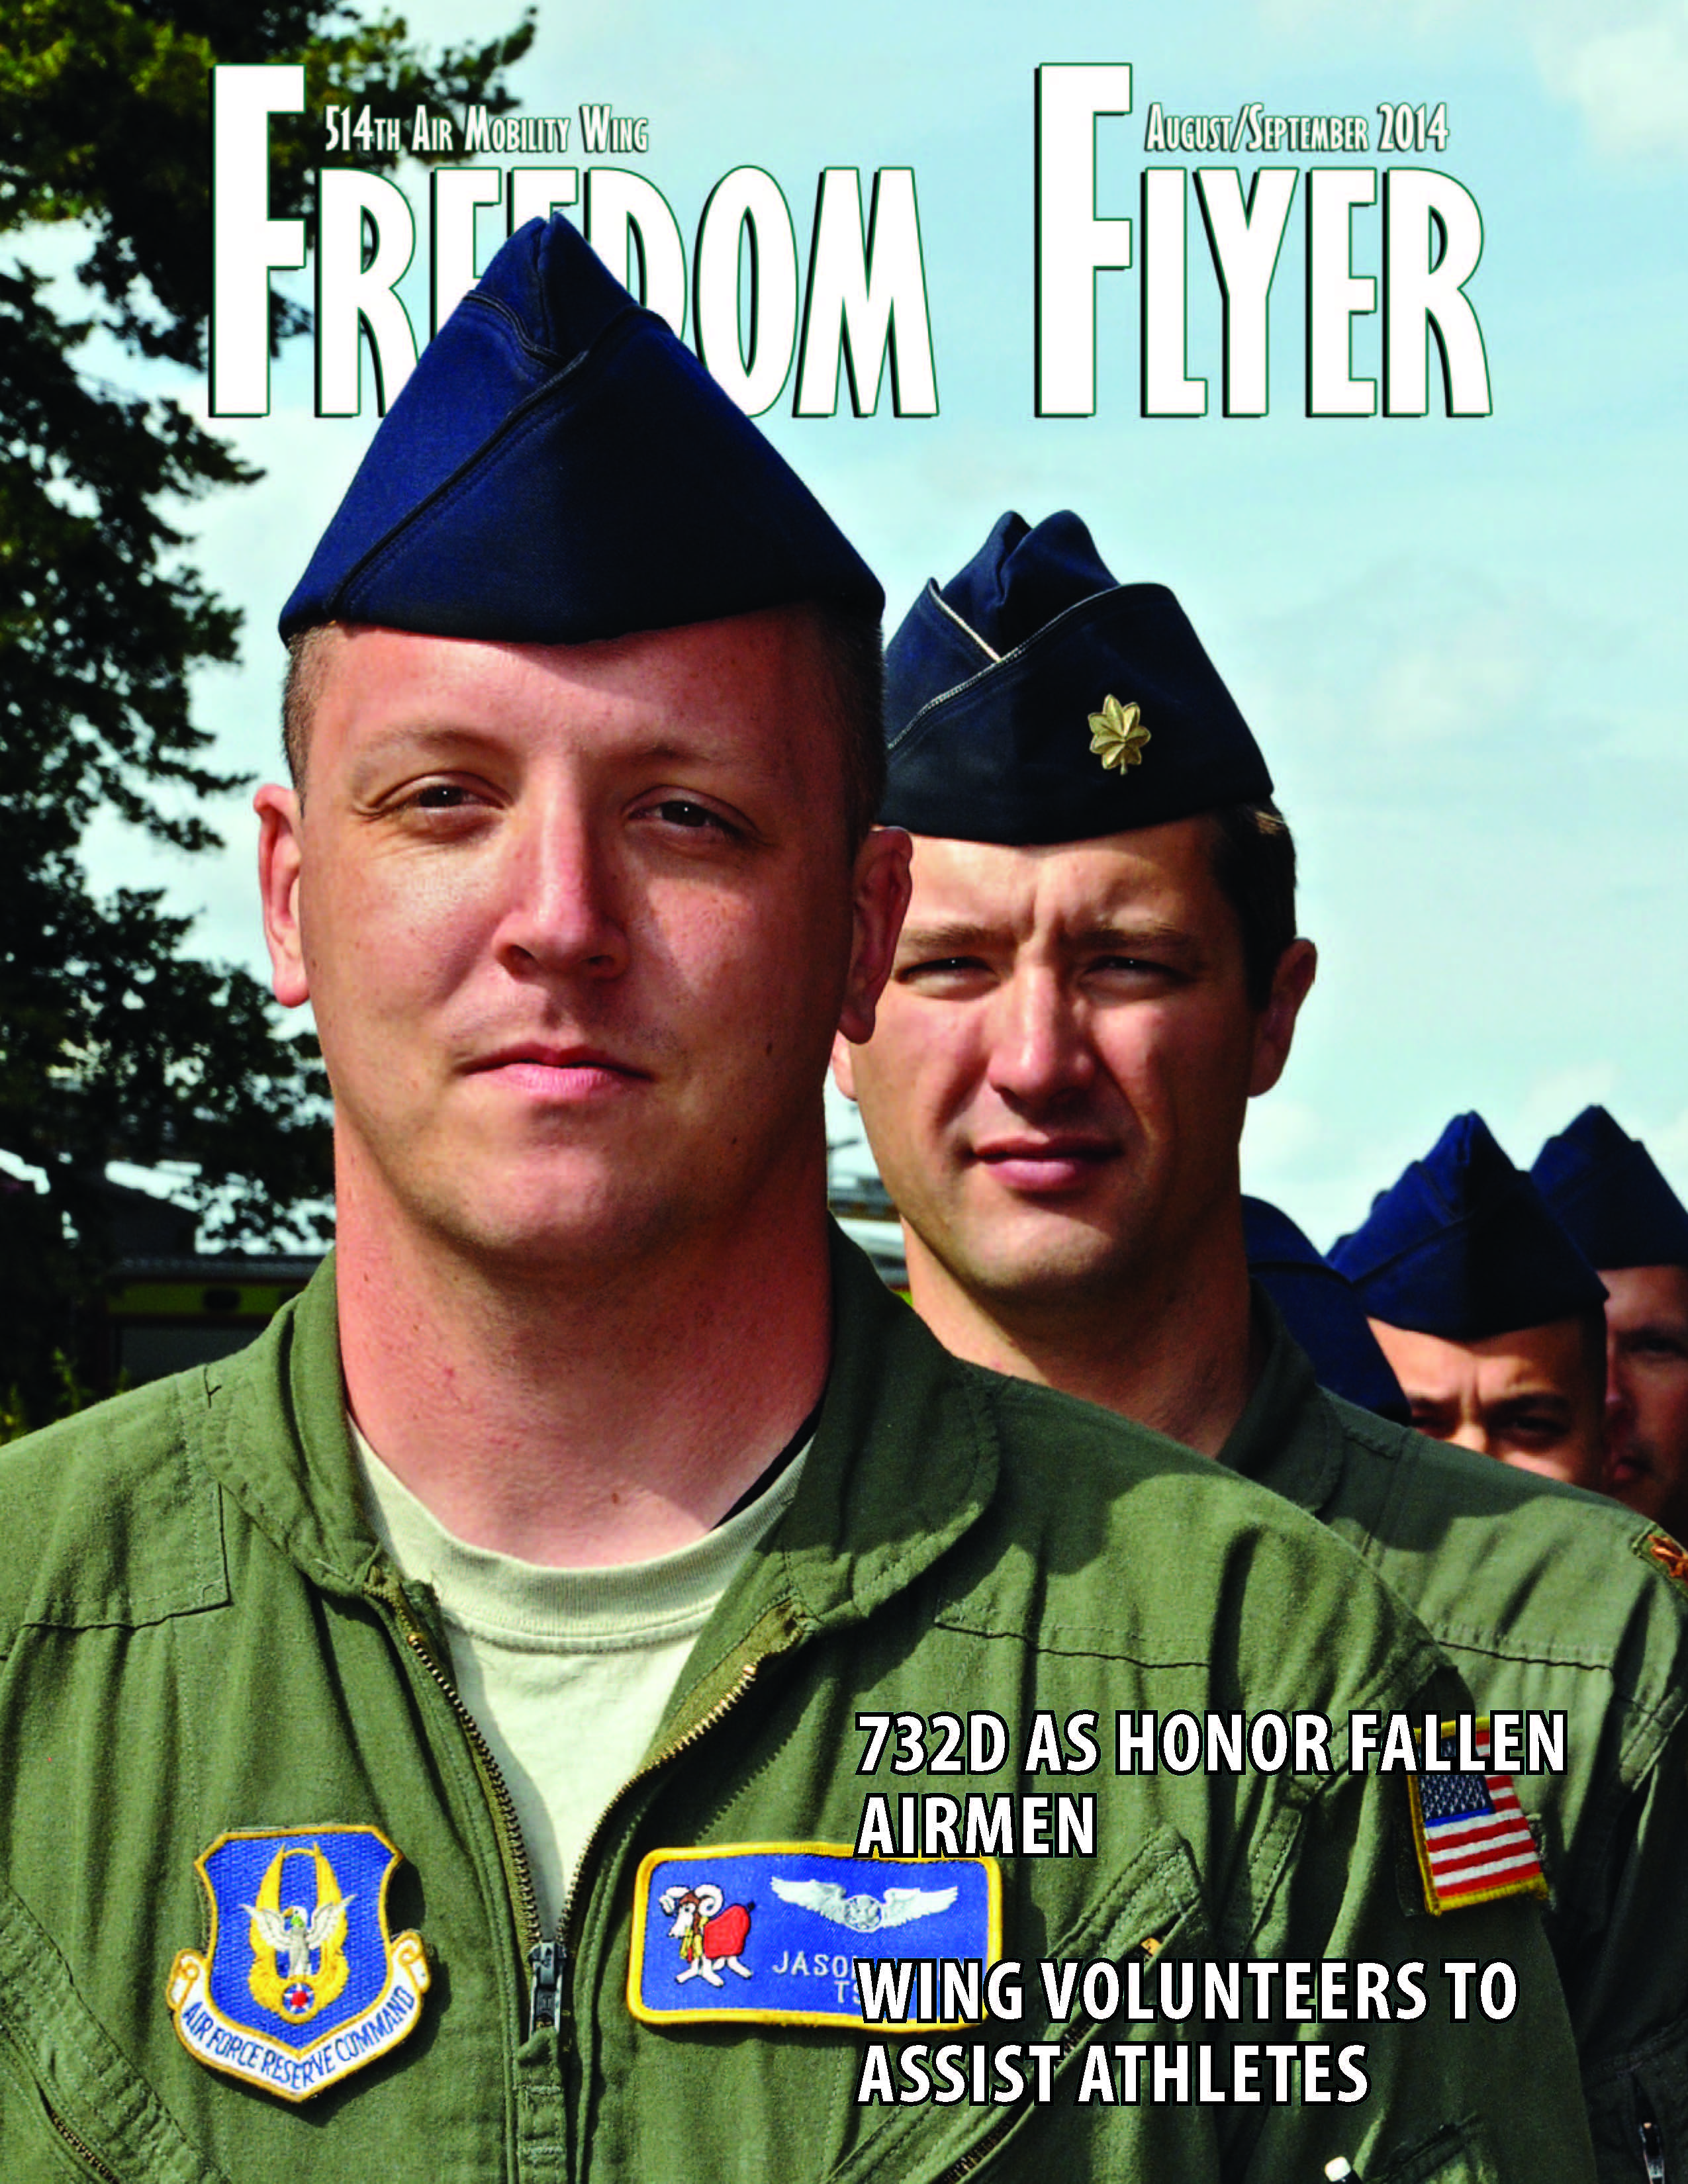 Freedom Flyer - August - September 2014